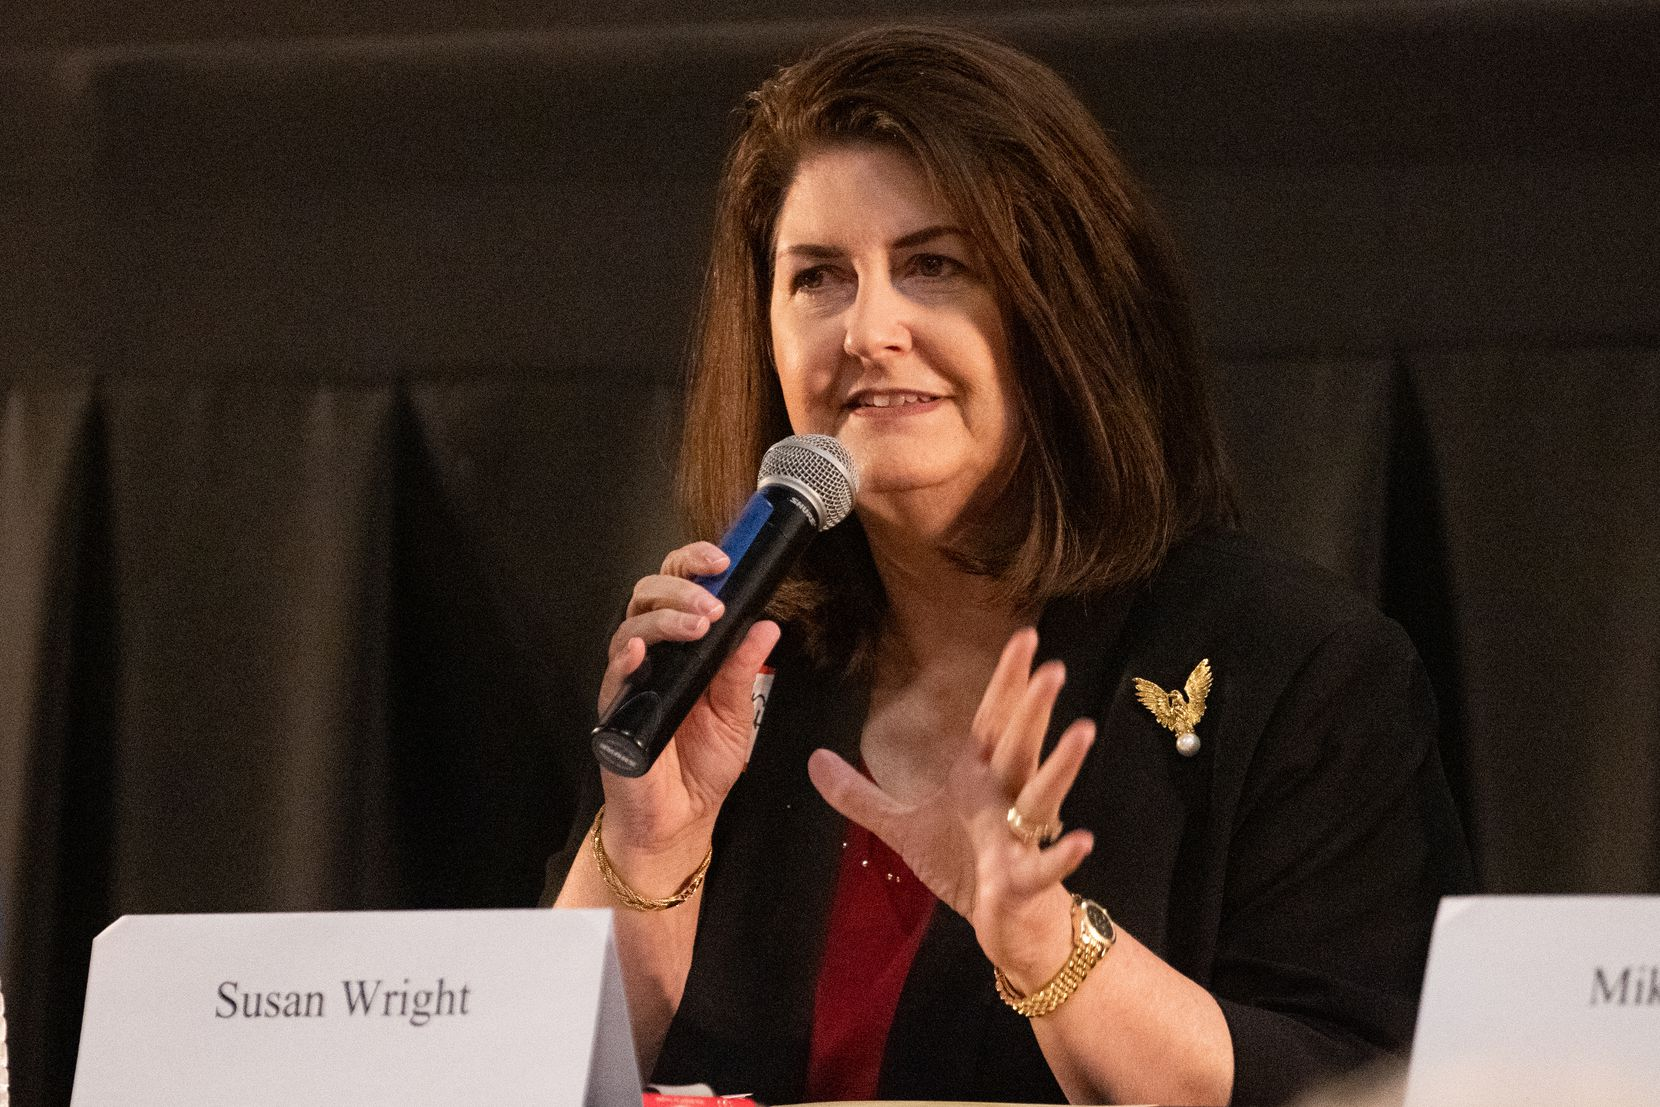 Susan Wright, a Republican candidate running in the 6th Congressional District of Texas race, answered questions during a forum hosted by the Arlington Republican Club at Studio Movie Grill in Arlington on Wednesday, March 31, 2021. (Juan Figueroa/ The Dallas Morning News)